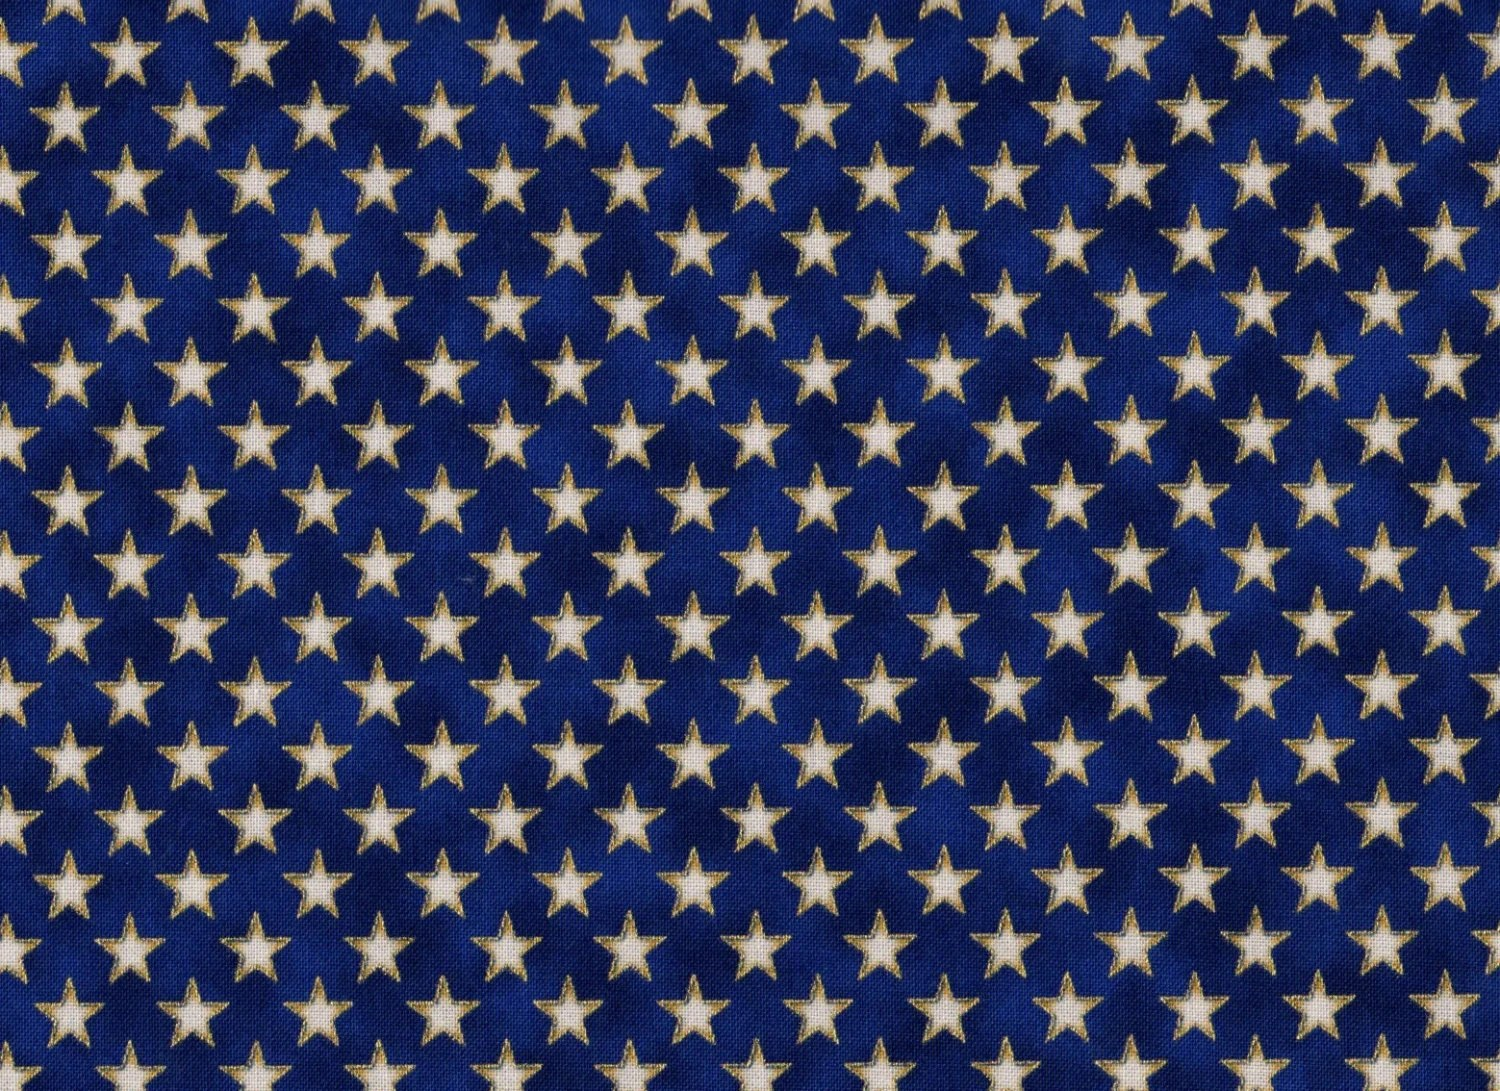 Black And White Floral Wallpaper Gold Star Fabric Navy Blue Star Fabric Star Fabric Blue And